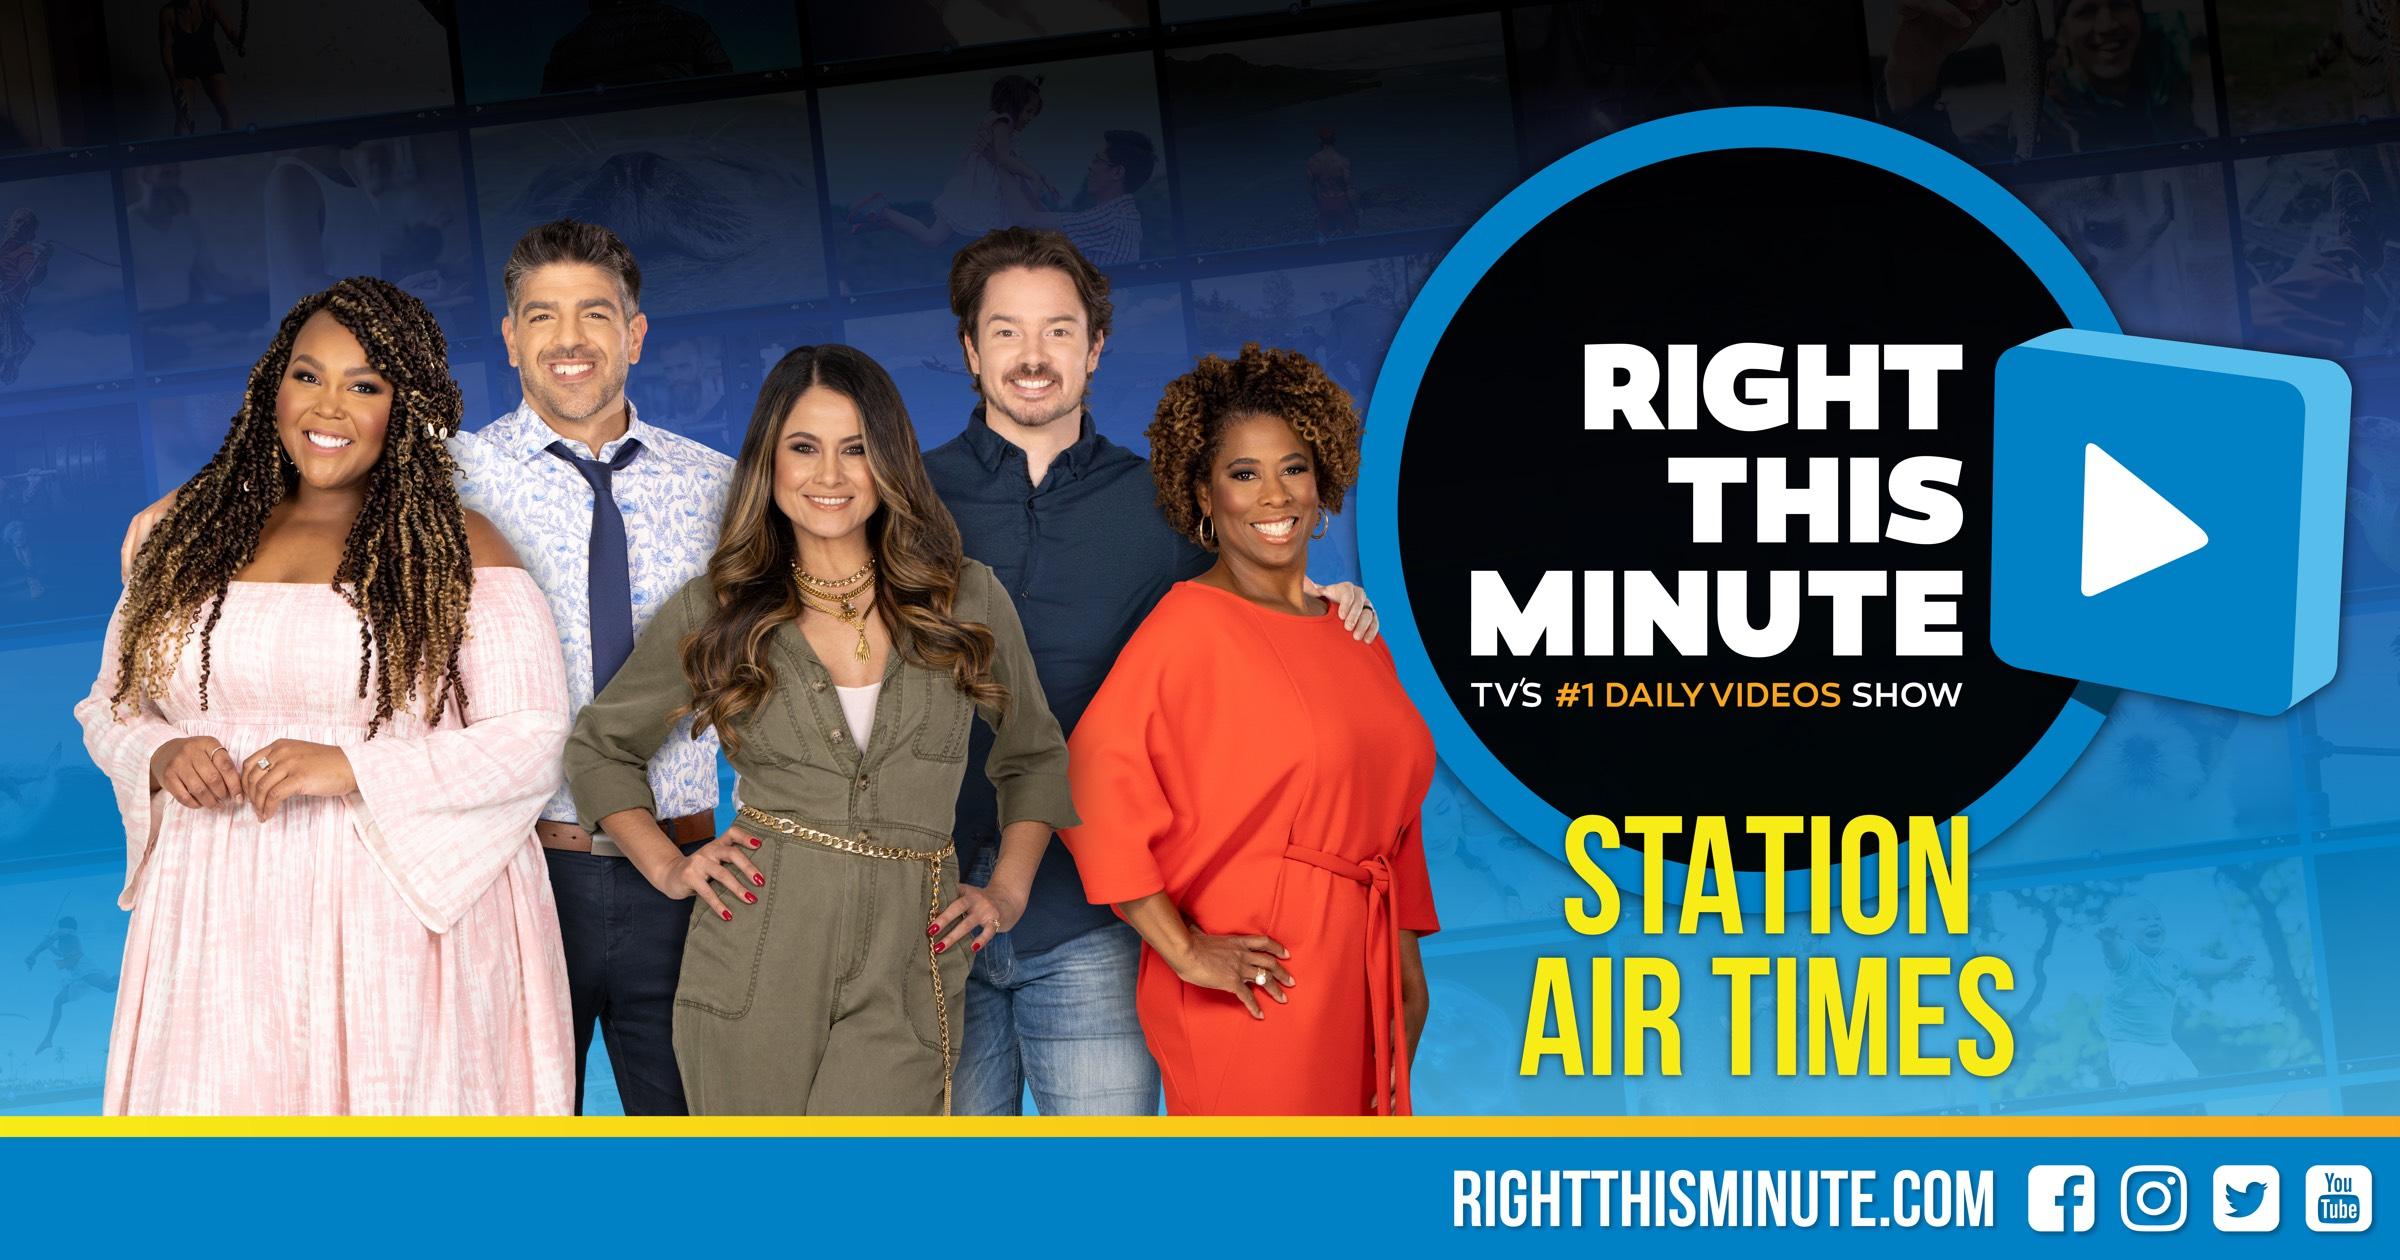 TV Stations & Air Times